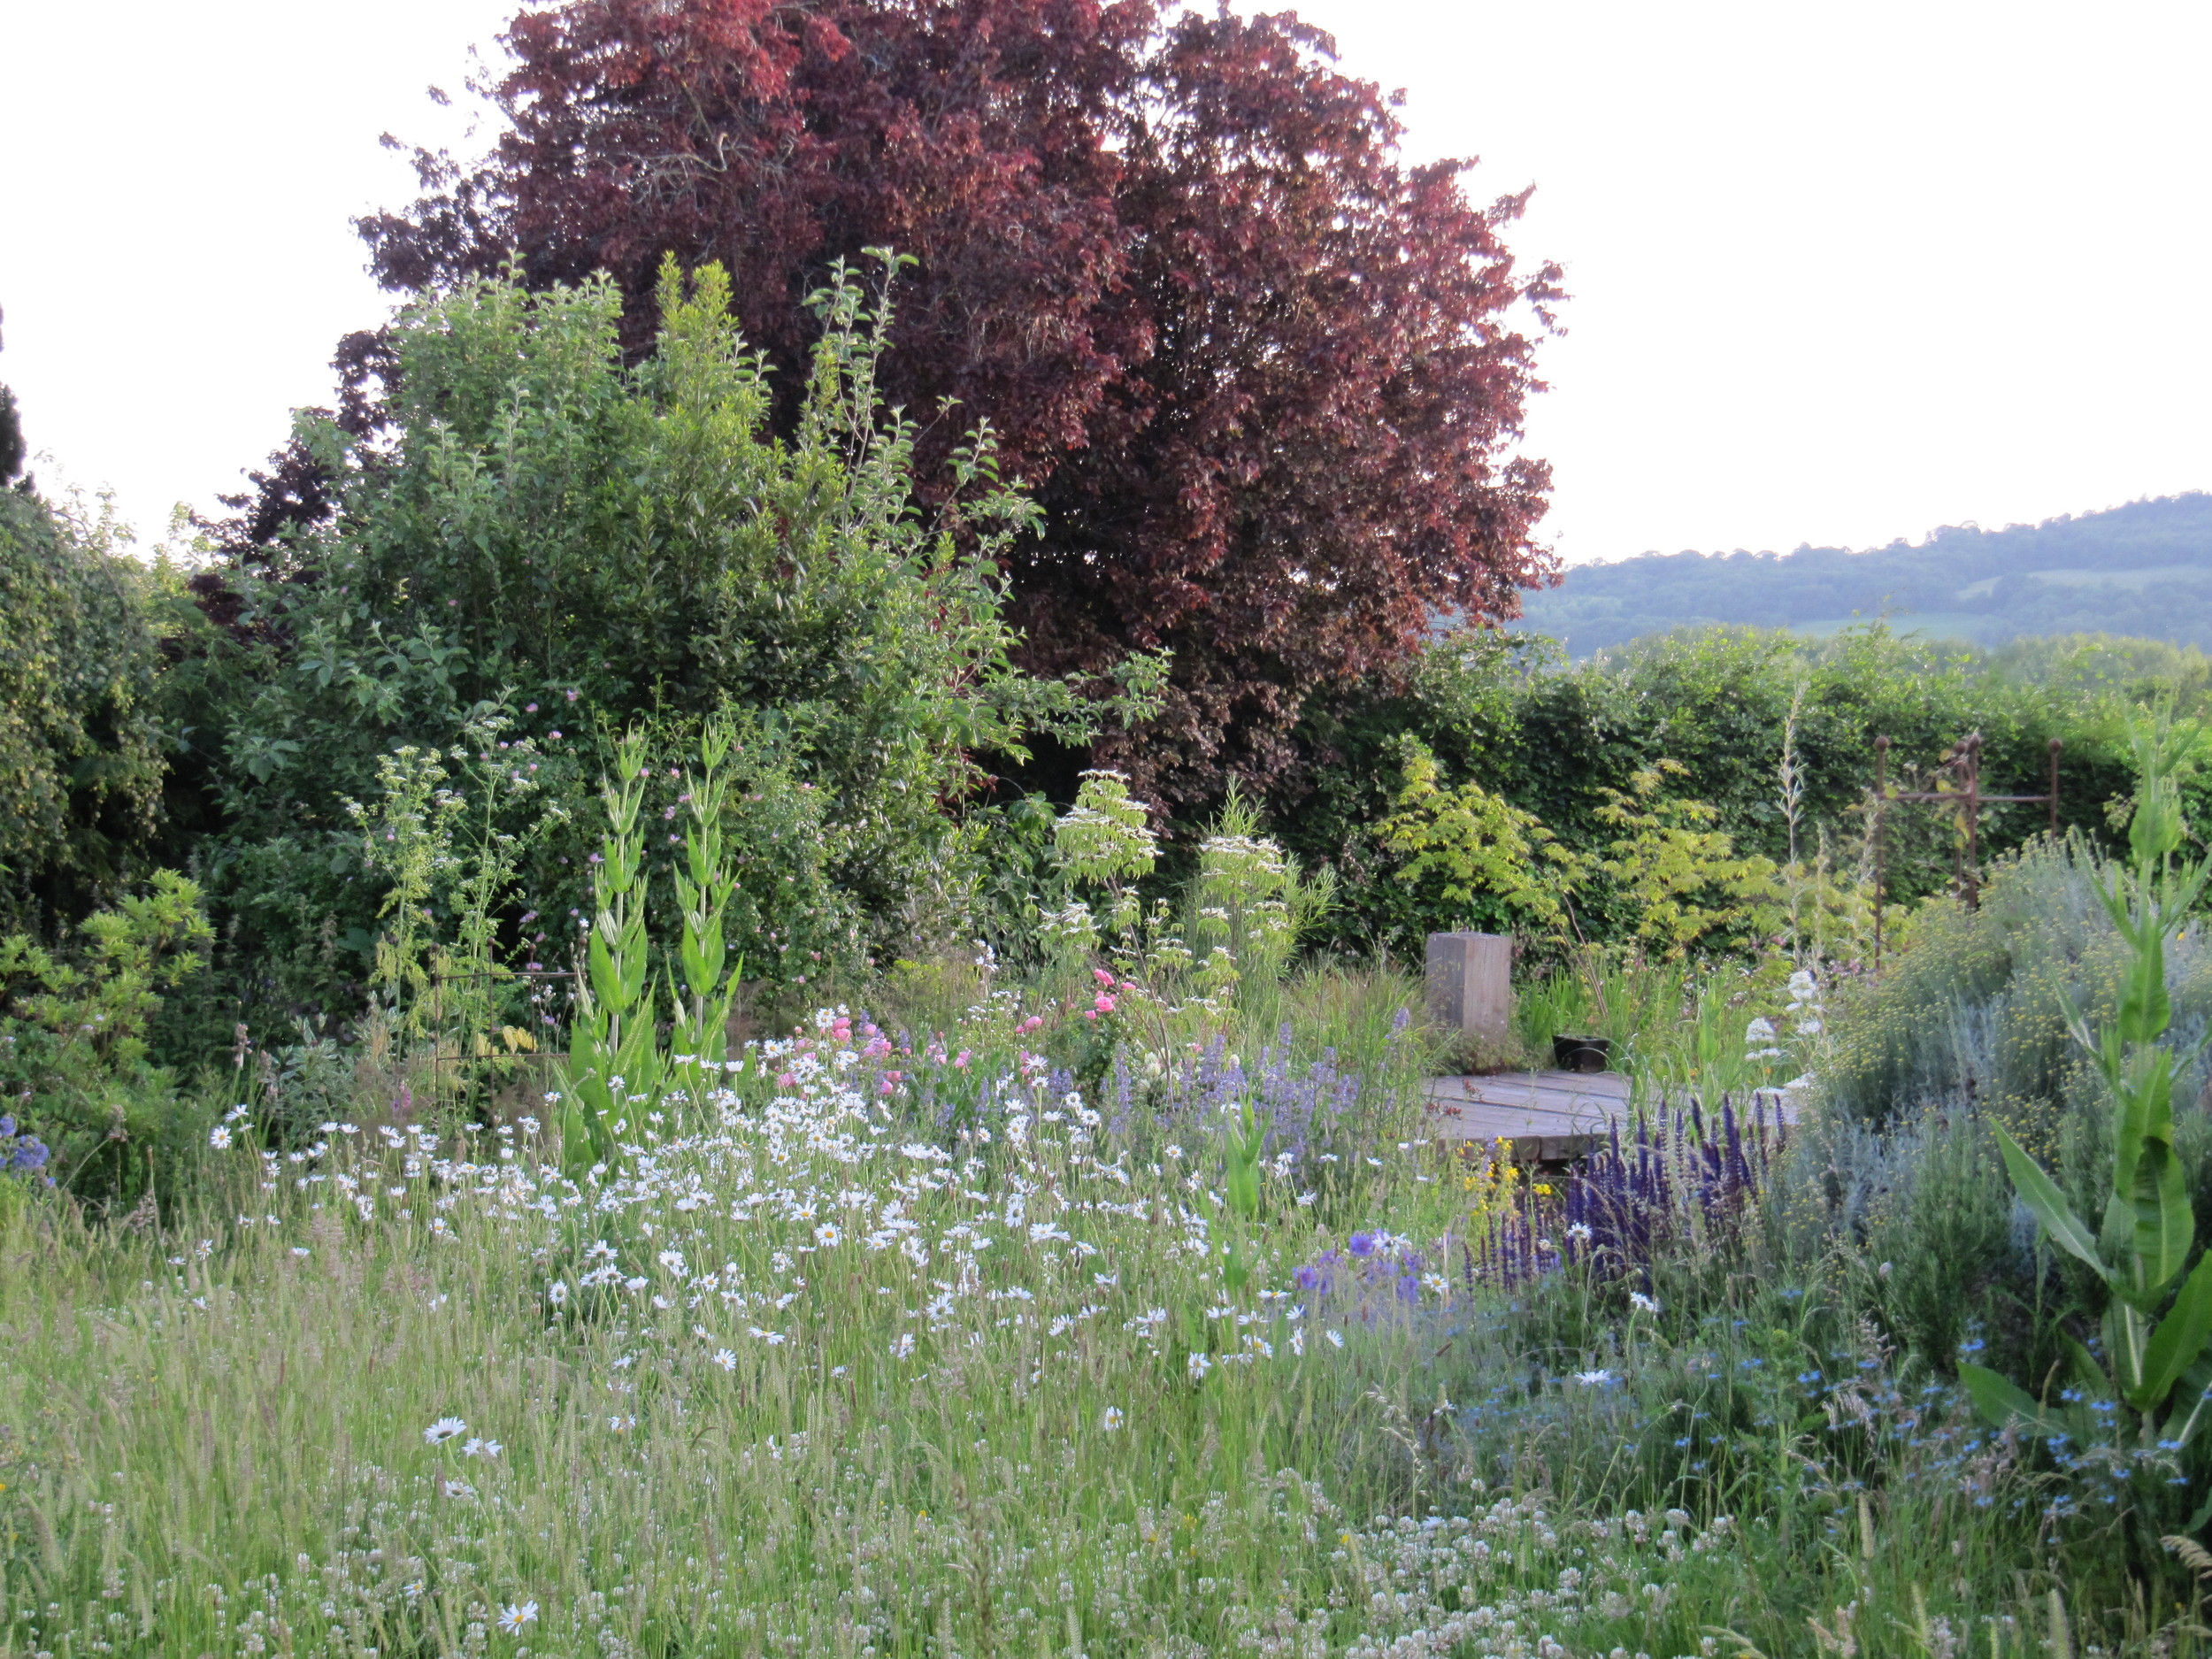 Mid summer in a densely planted garden, full of colour and alive with birds and insects